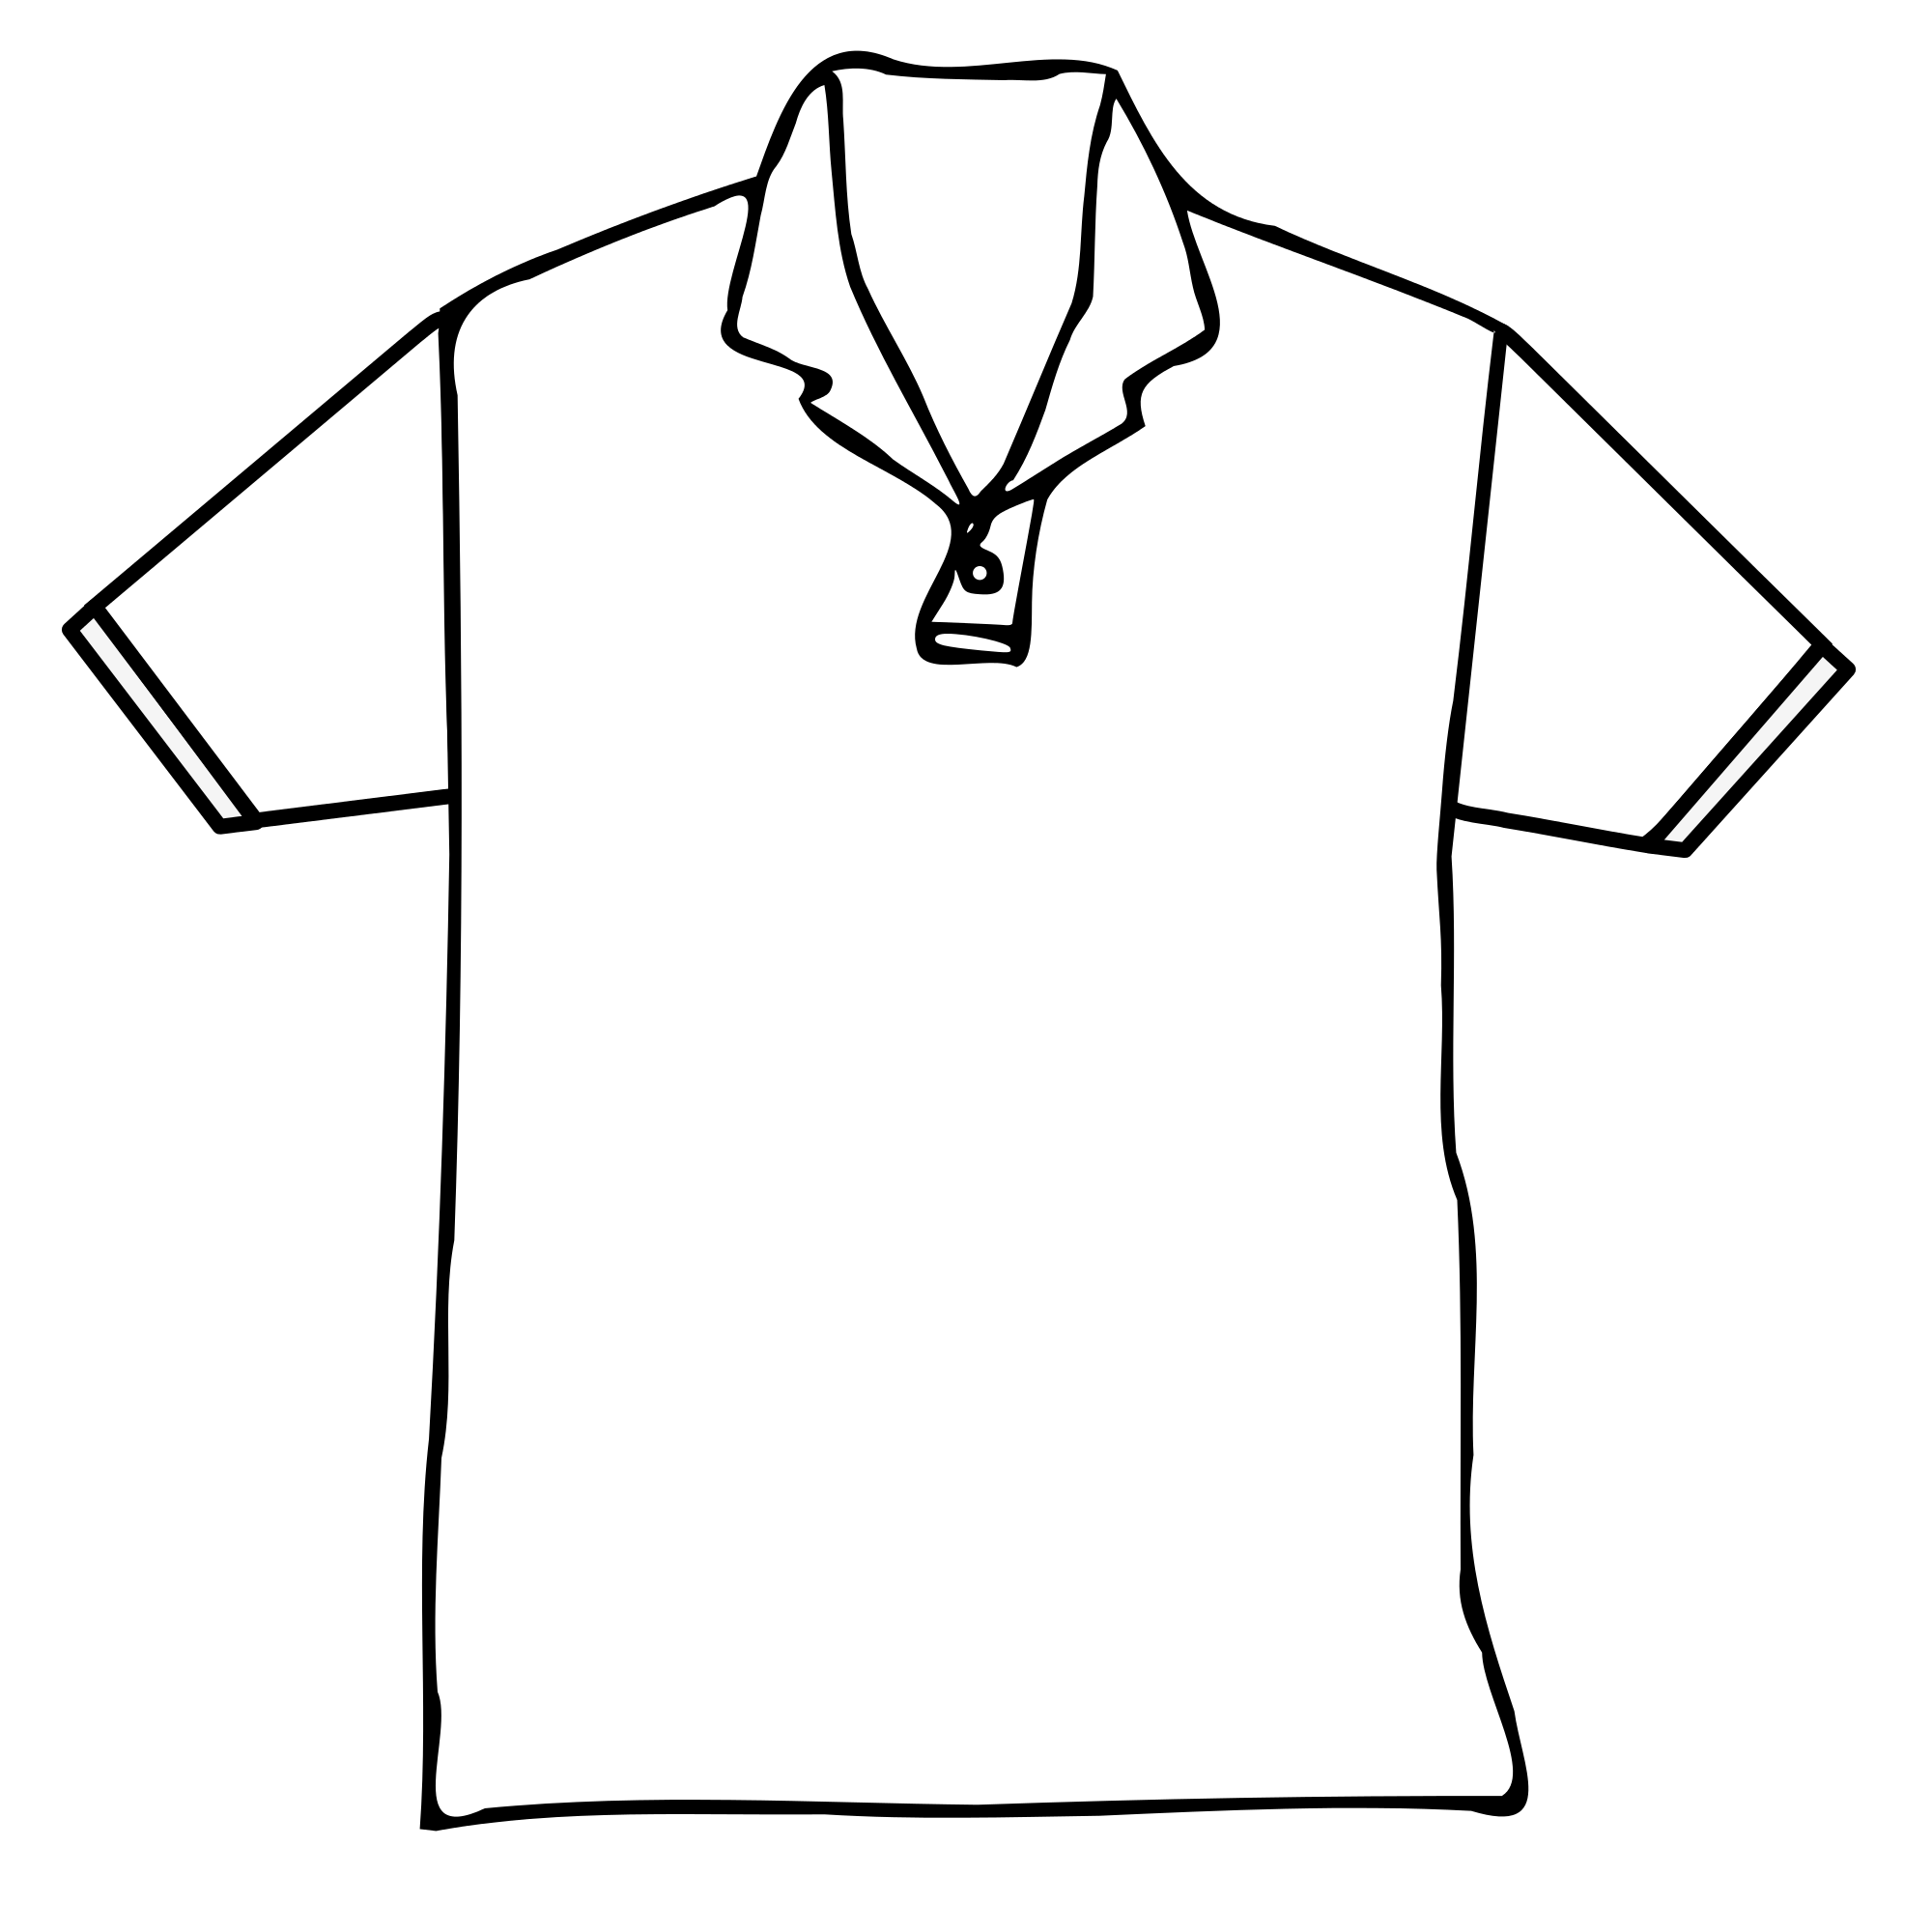 Polo drawing simple. Collection of high